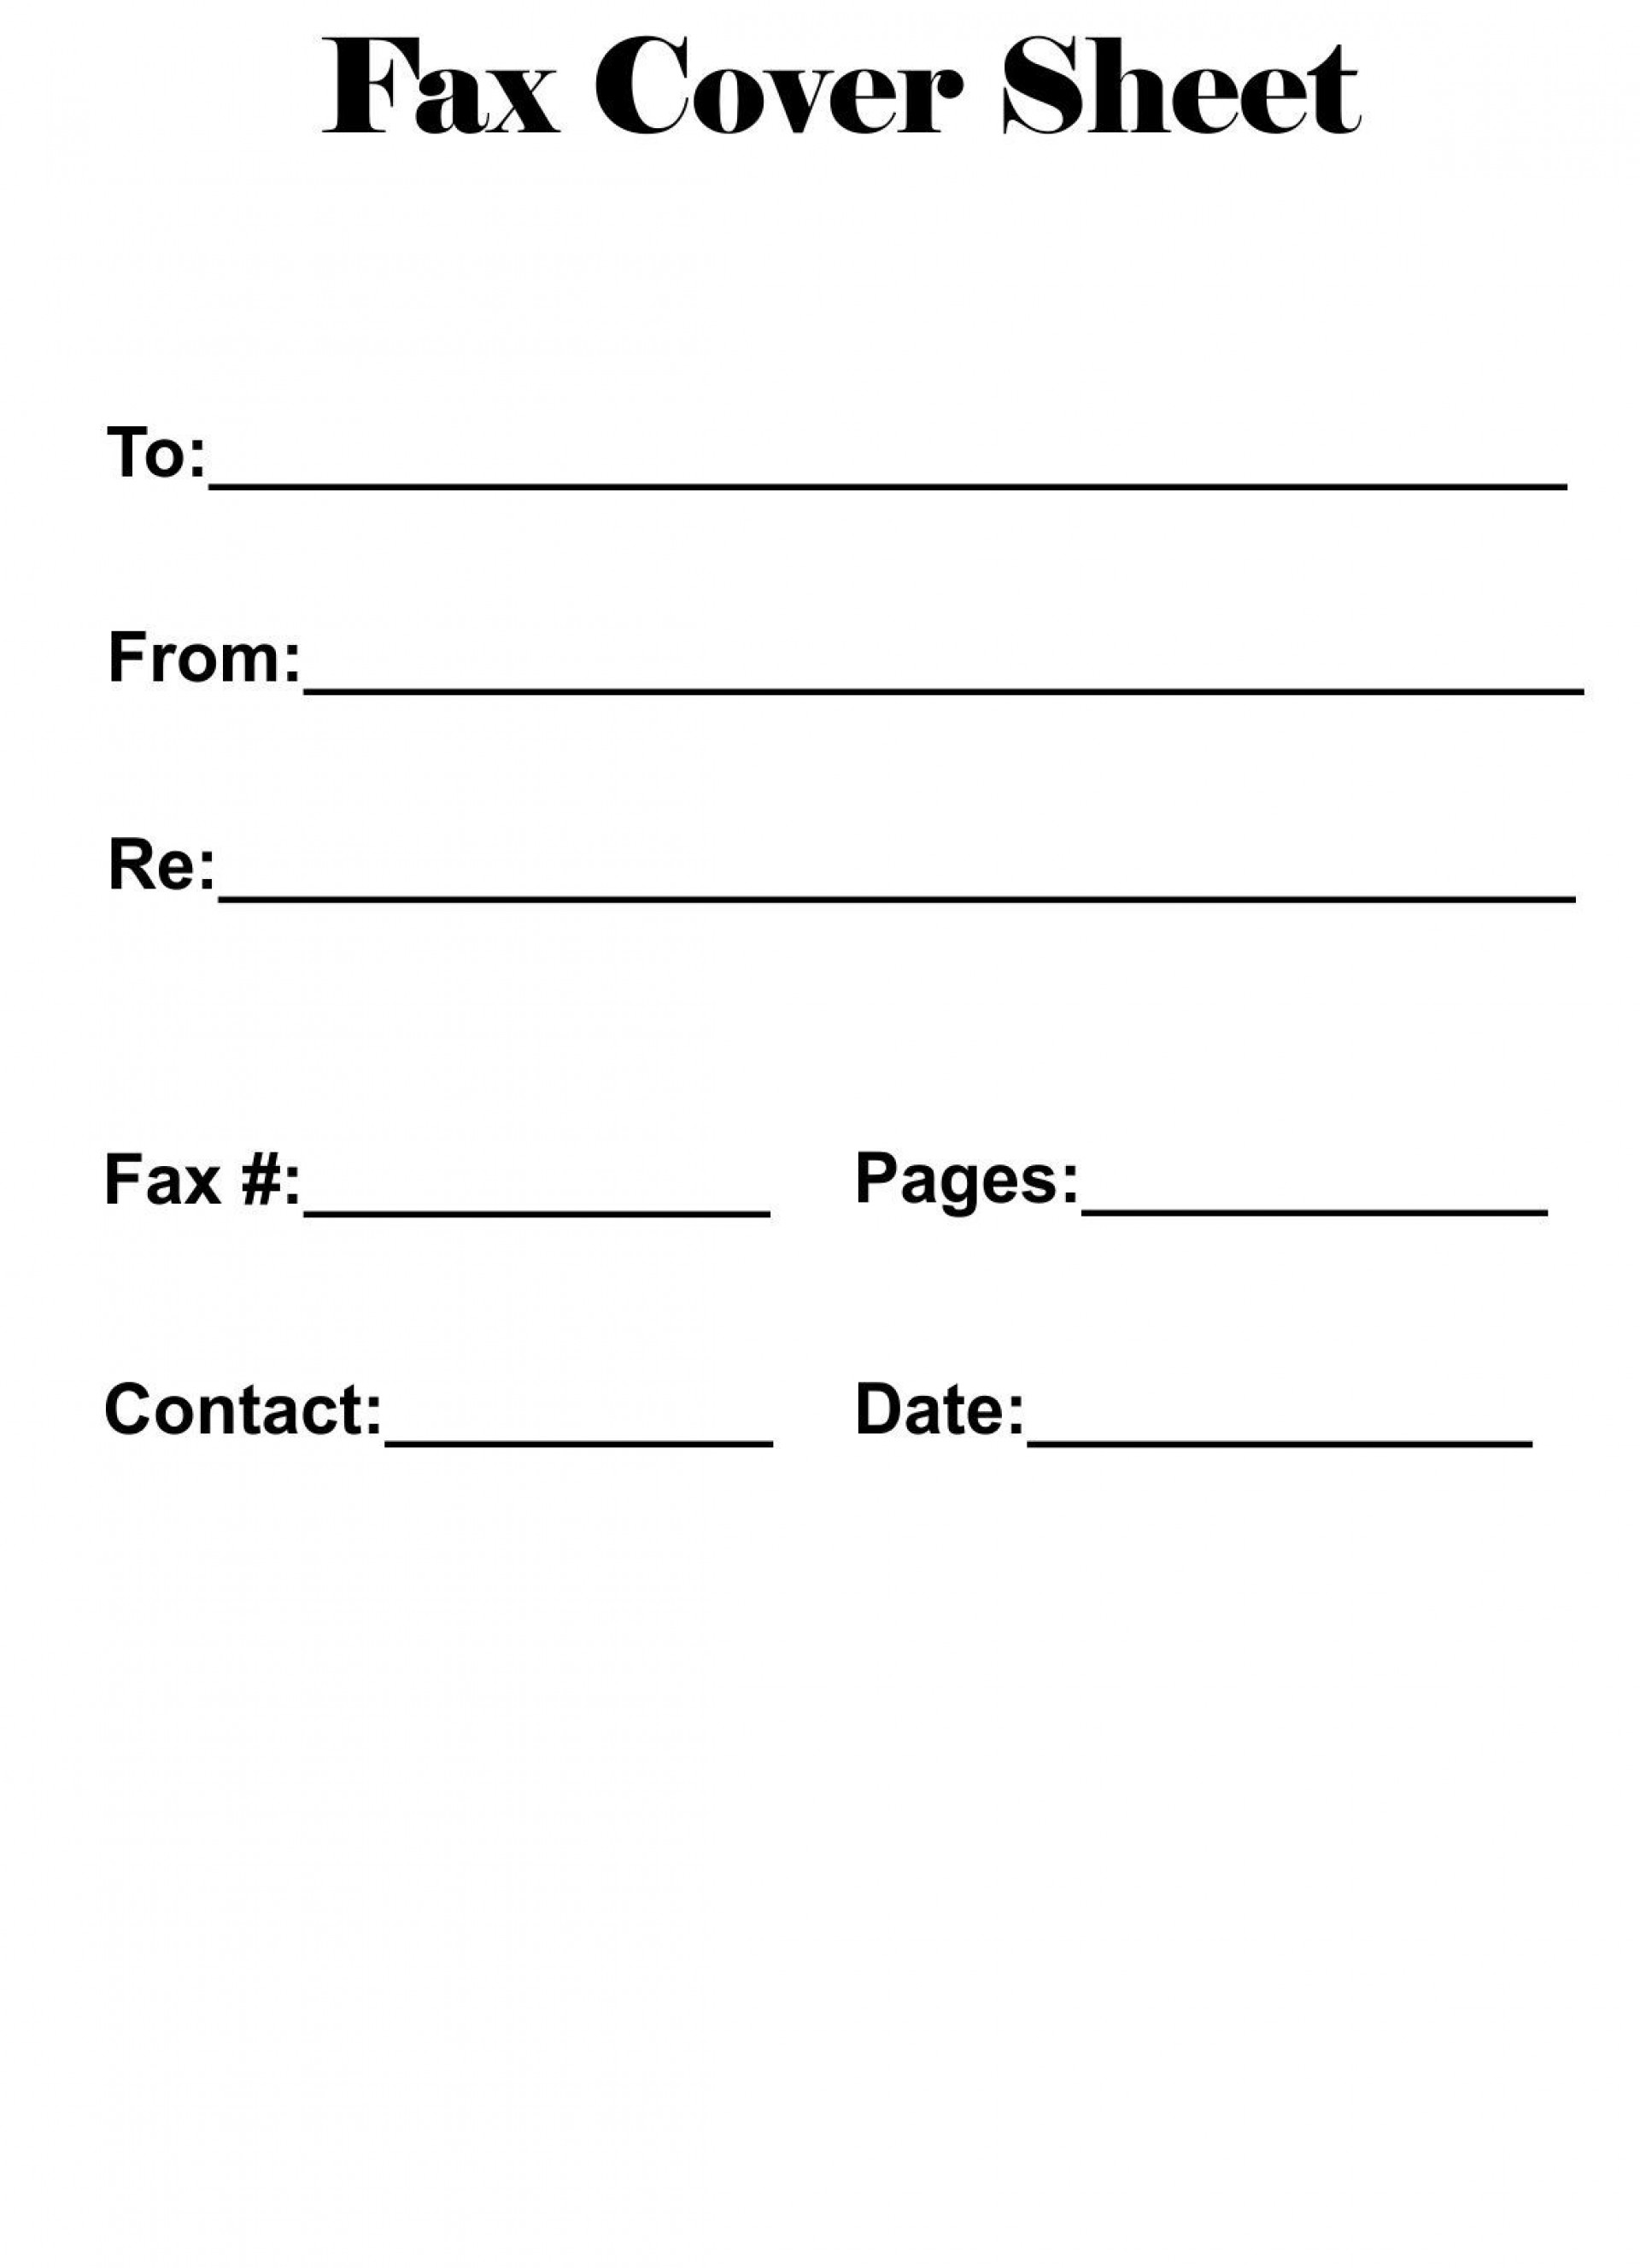 Fax Sheet Template Word from www.addictionary.org